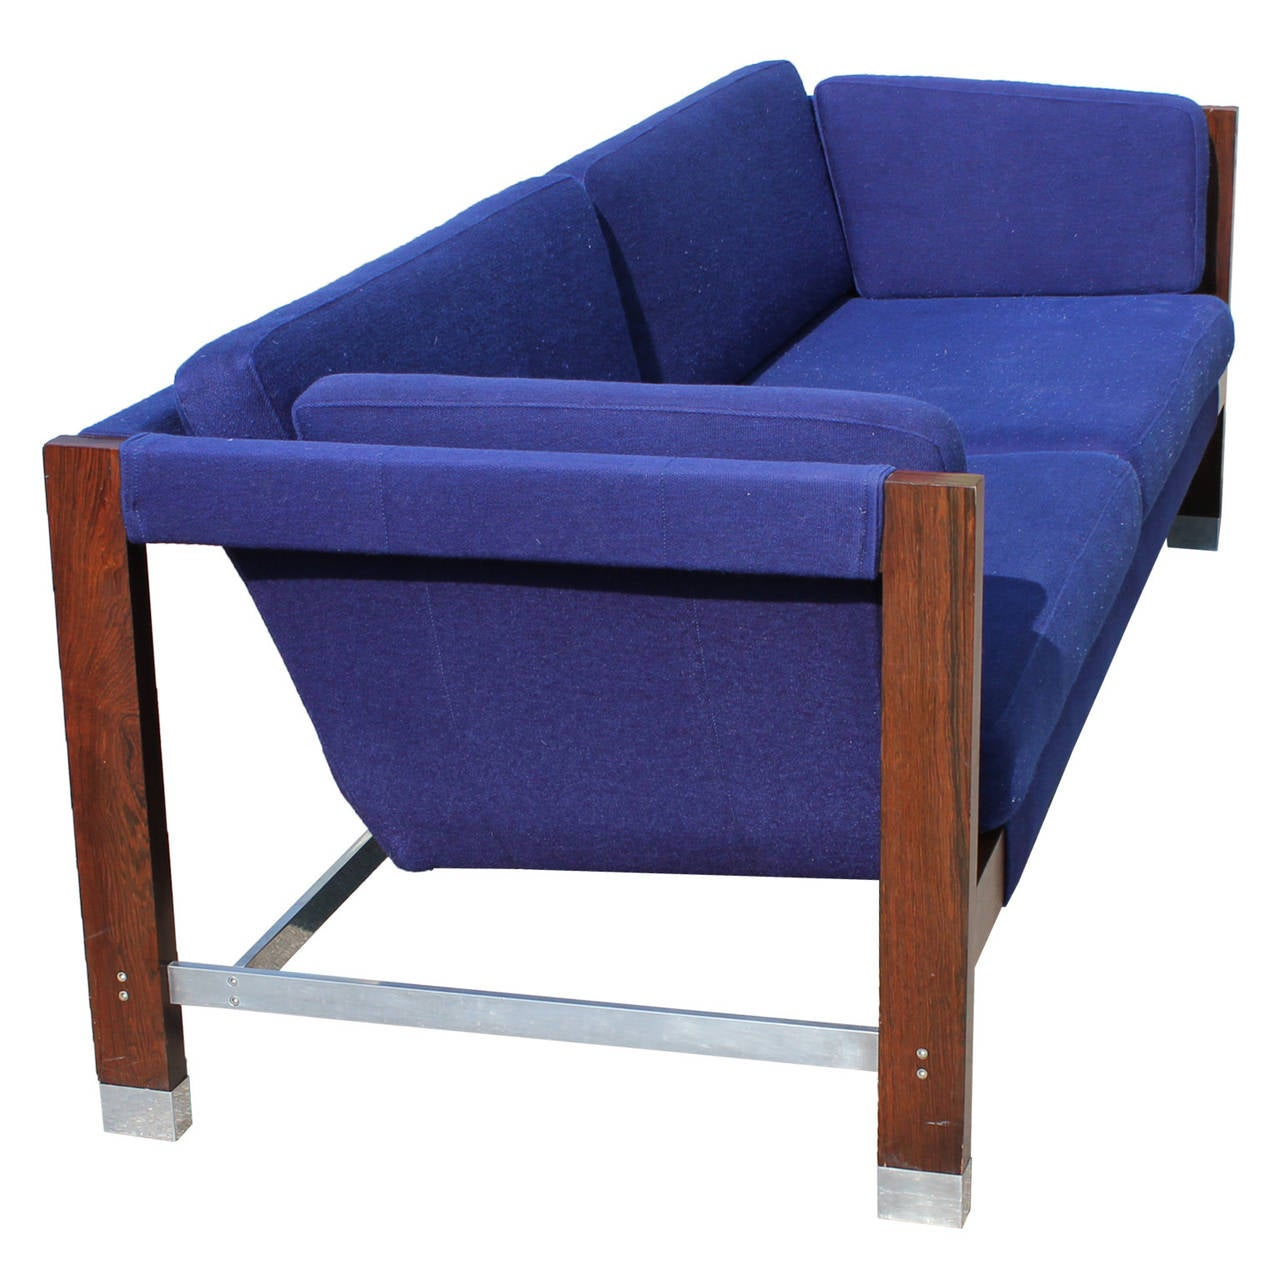 Milo Baughman Rosewood And Chrome Blue Sling Sofa At 1stdibs